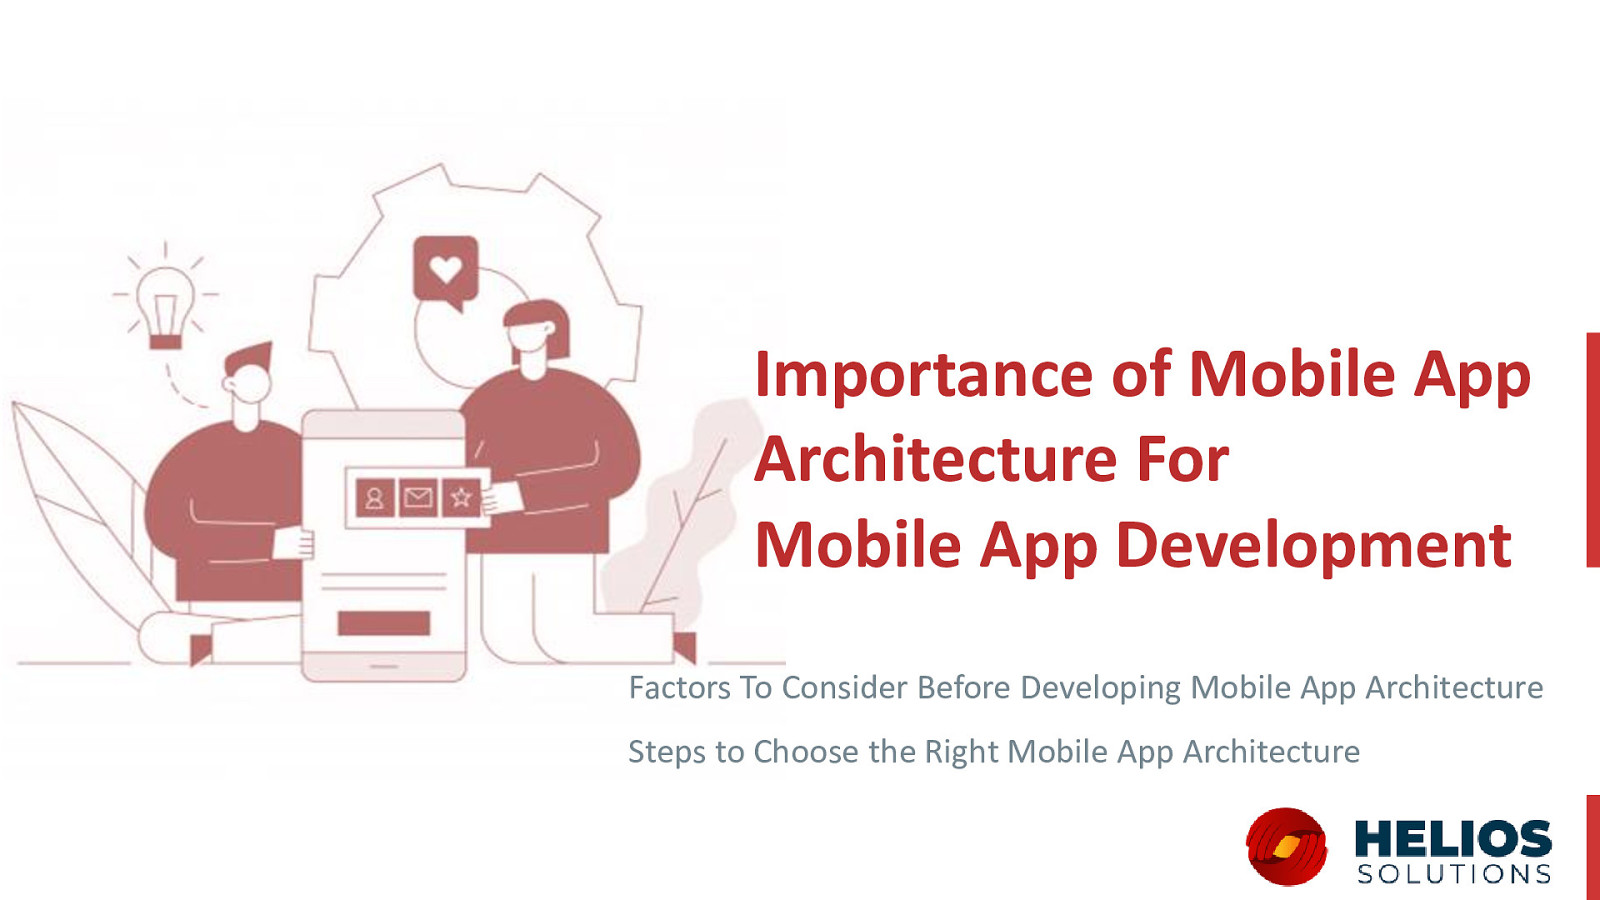 Importance of Mobile App Architecture For Mobile App Development